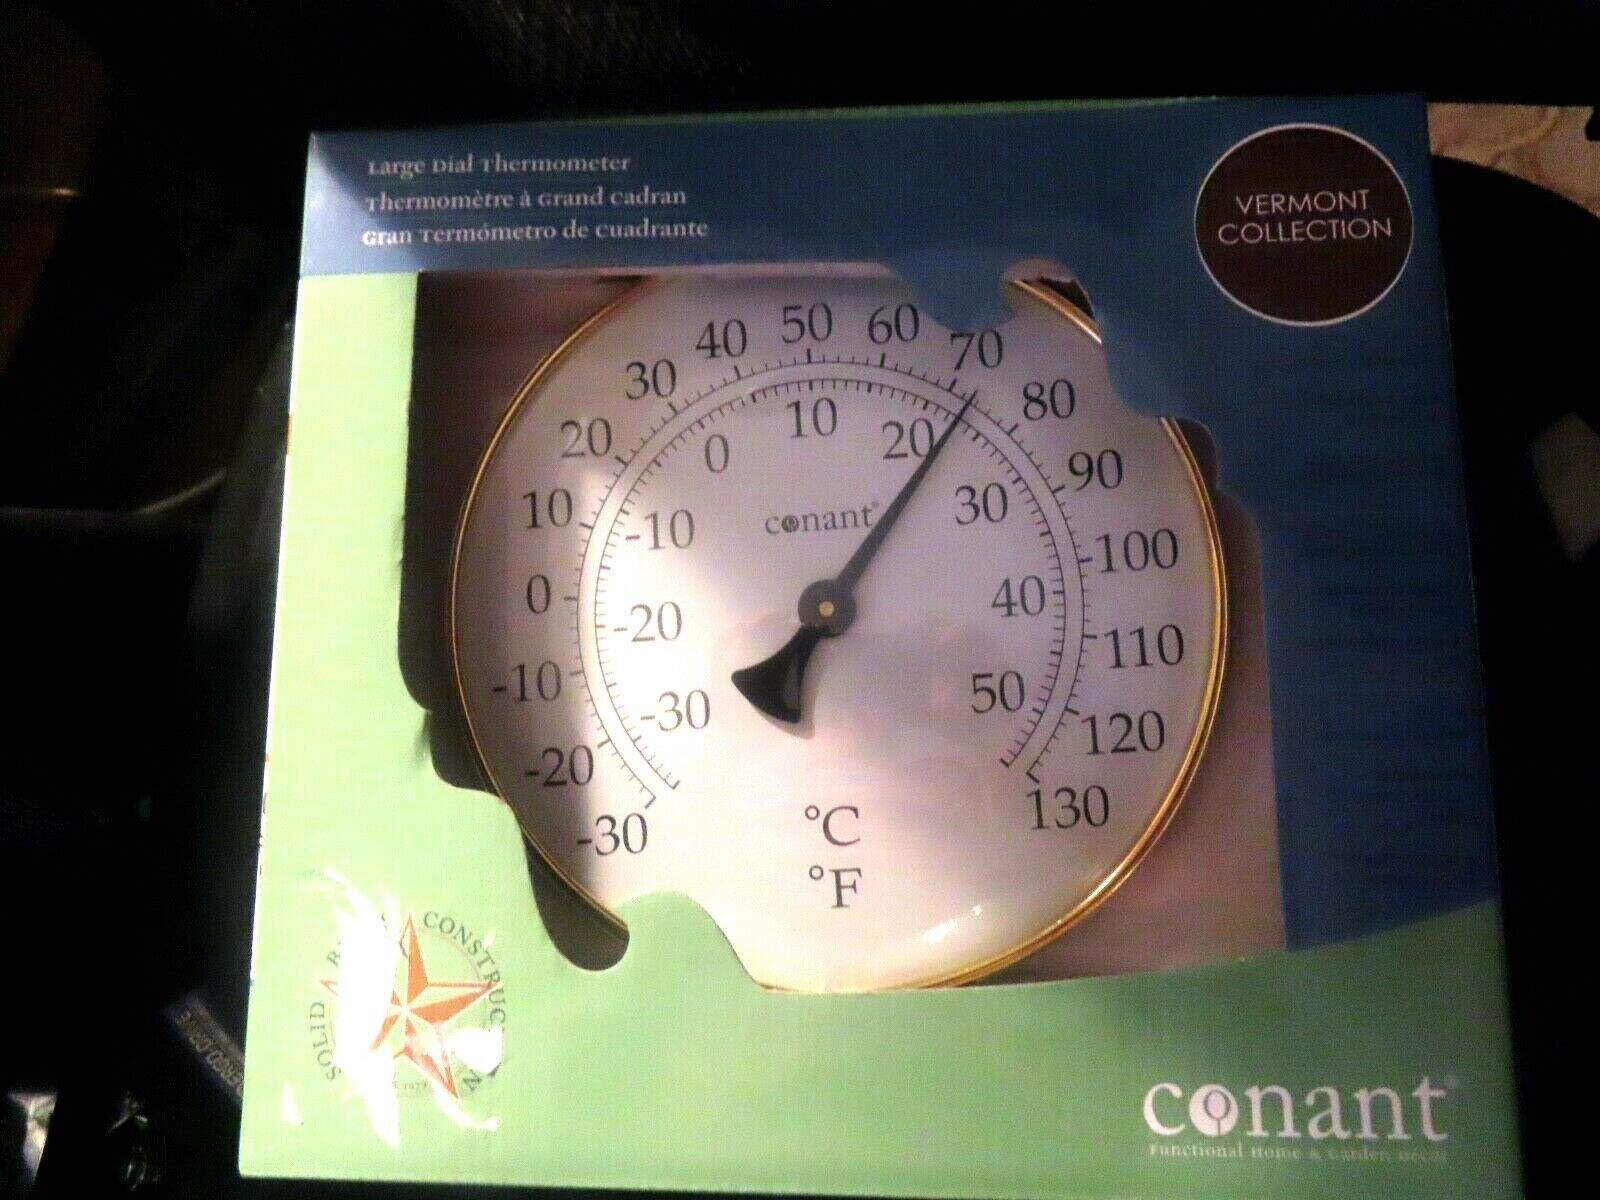 POTTERY BARN Dial Thermometer - 8.5